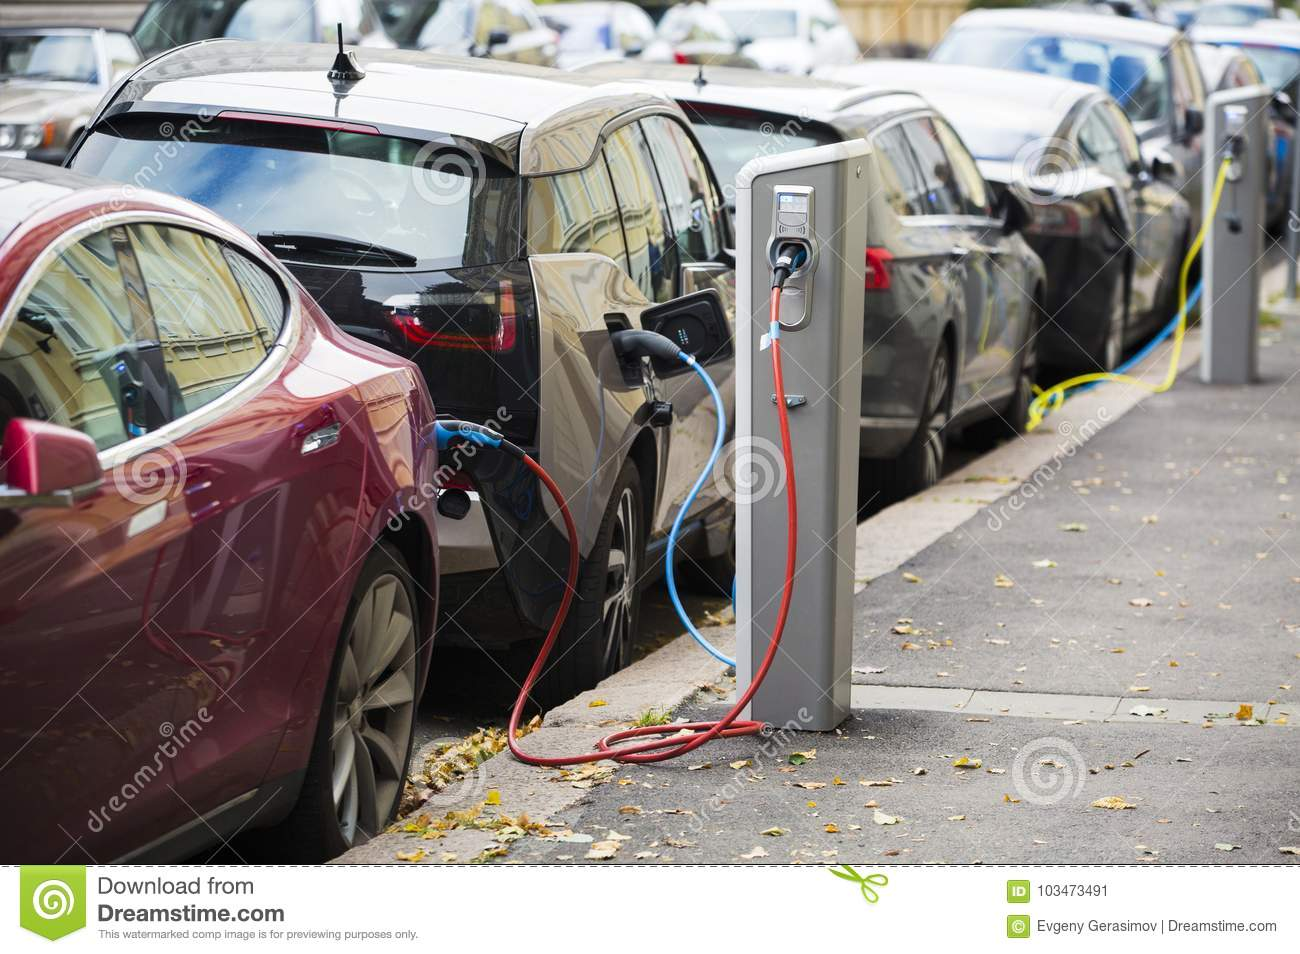 Many electric car are charged by charging stations